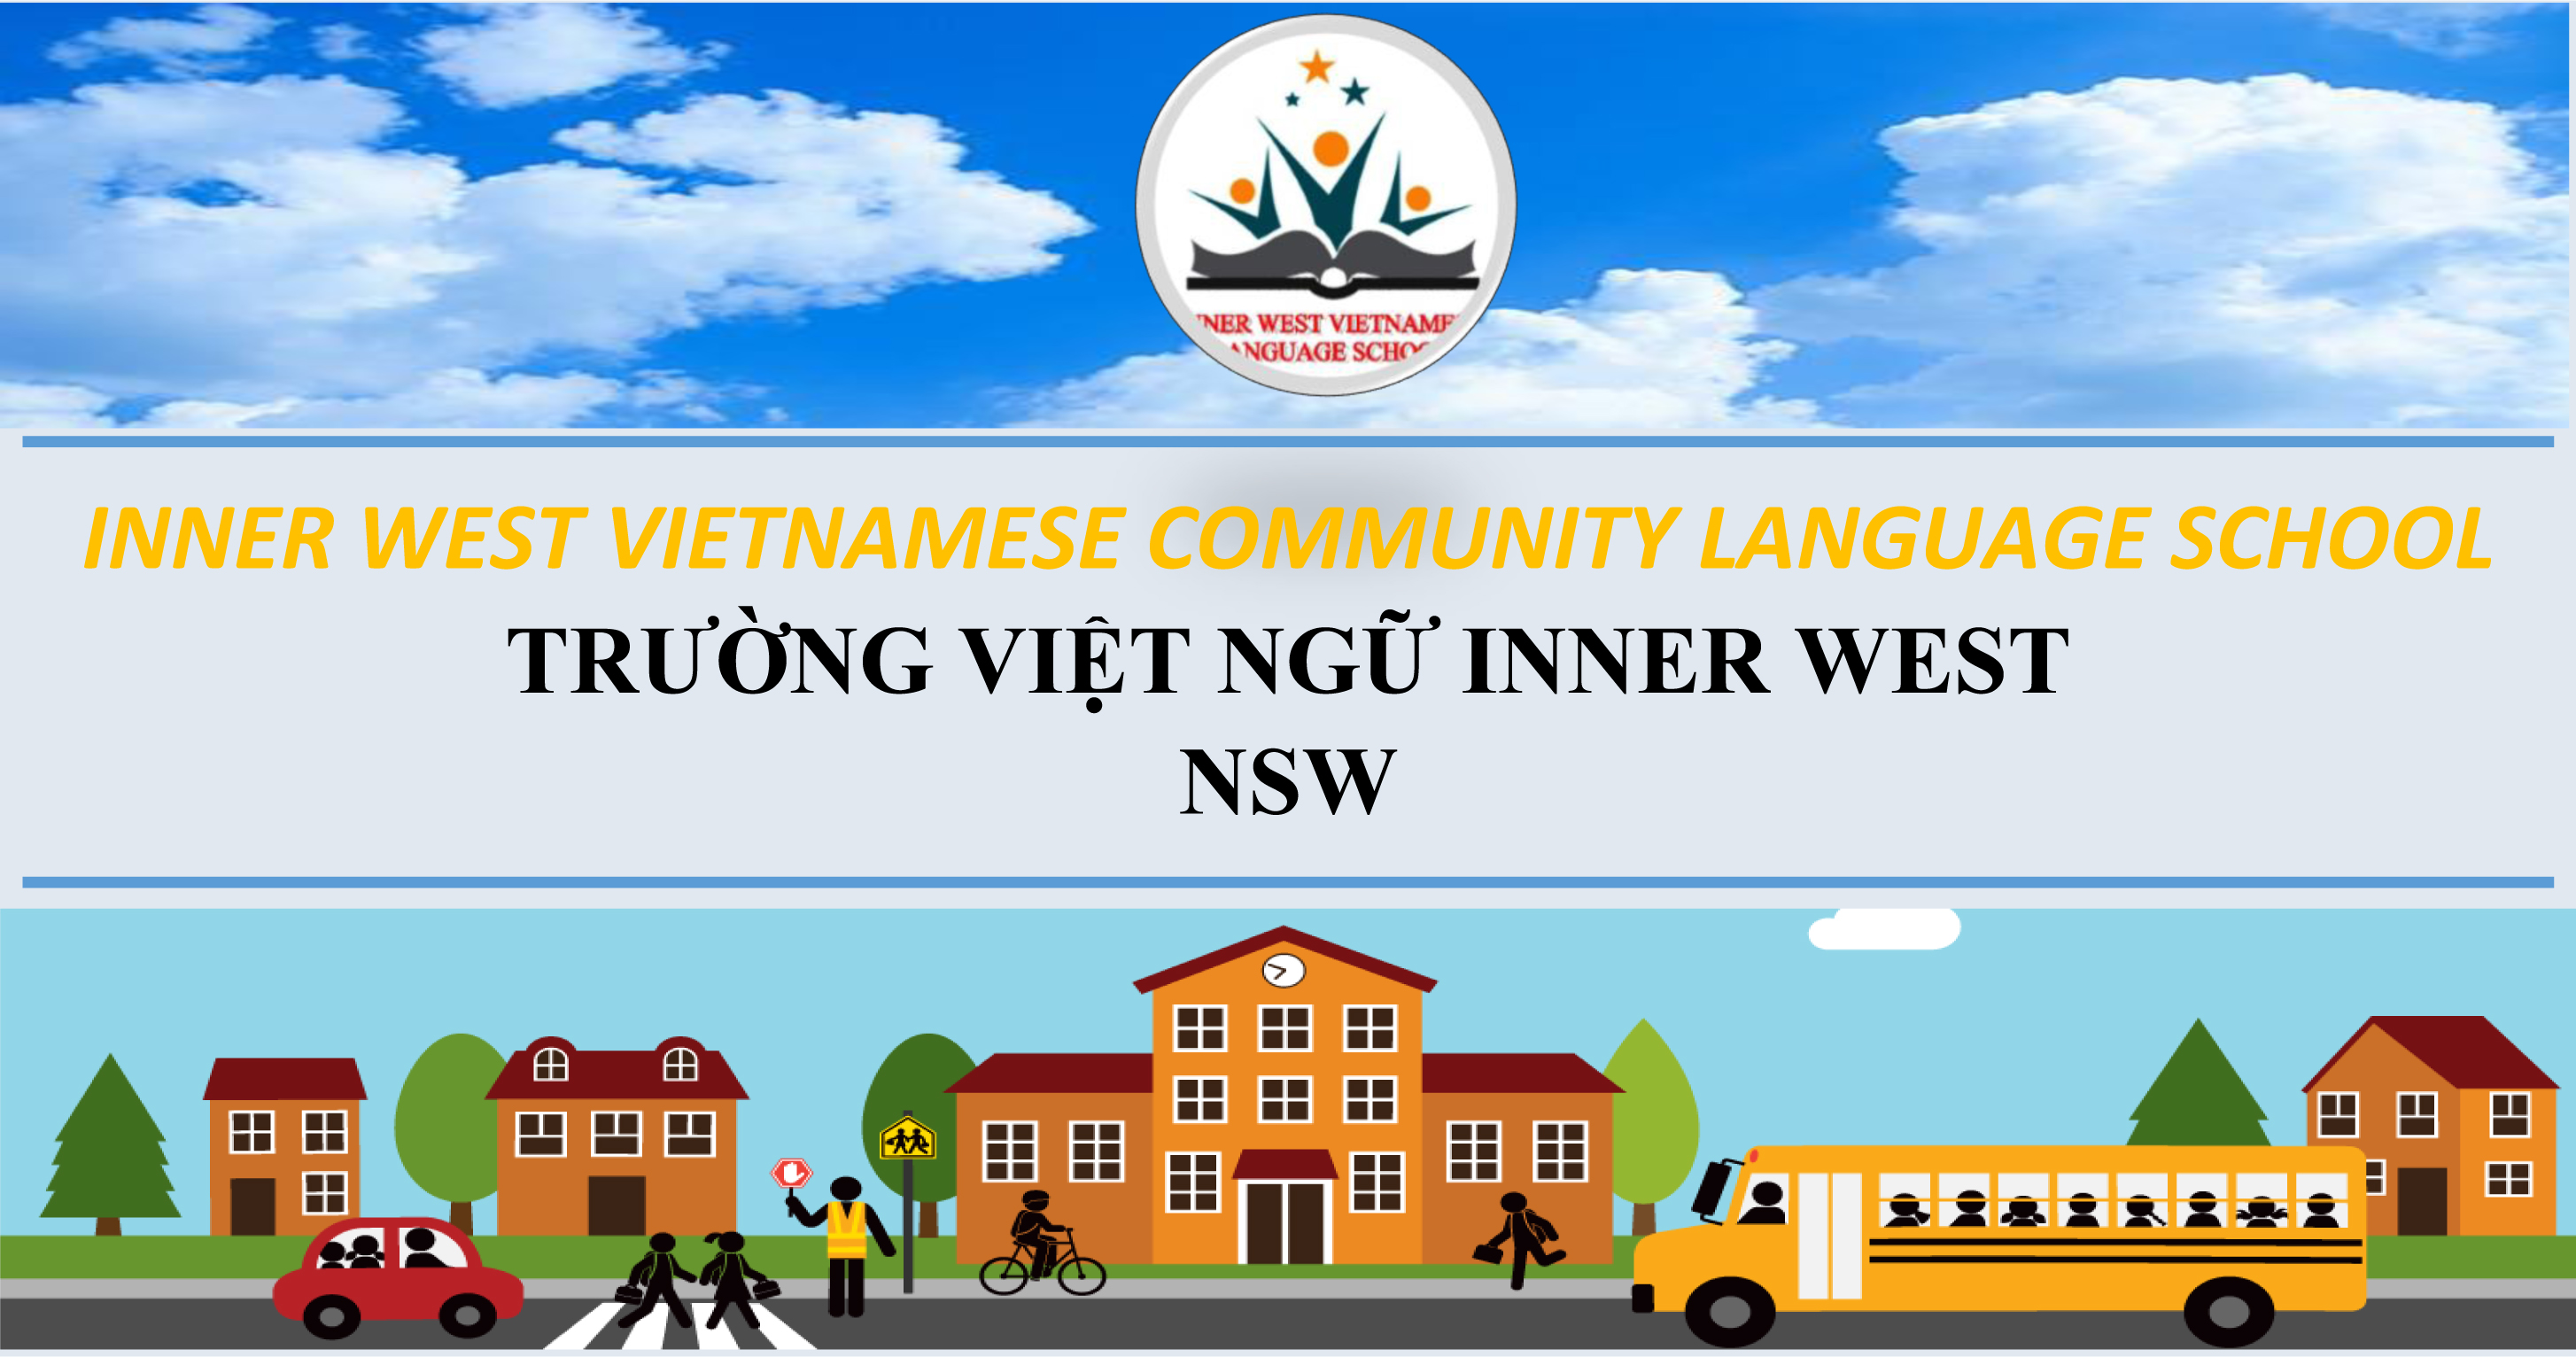 Inner West Vietnamese Community Language School